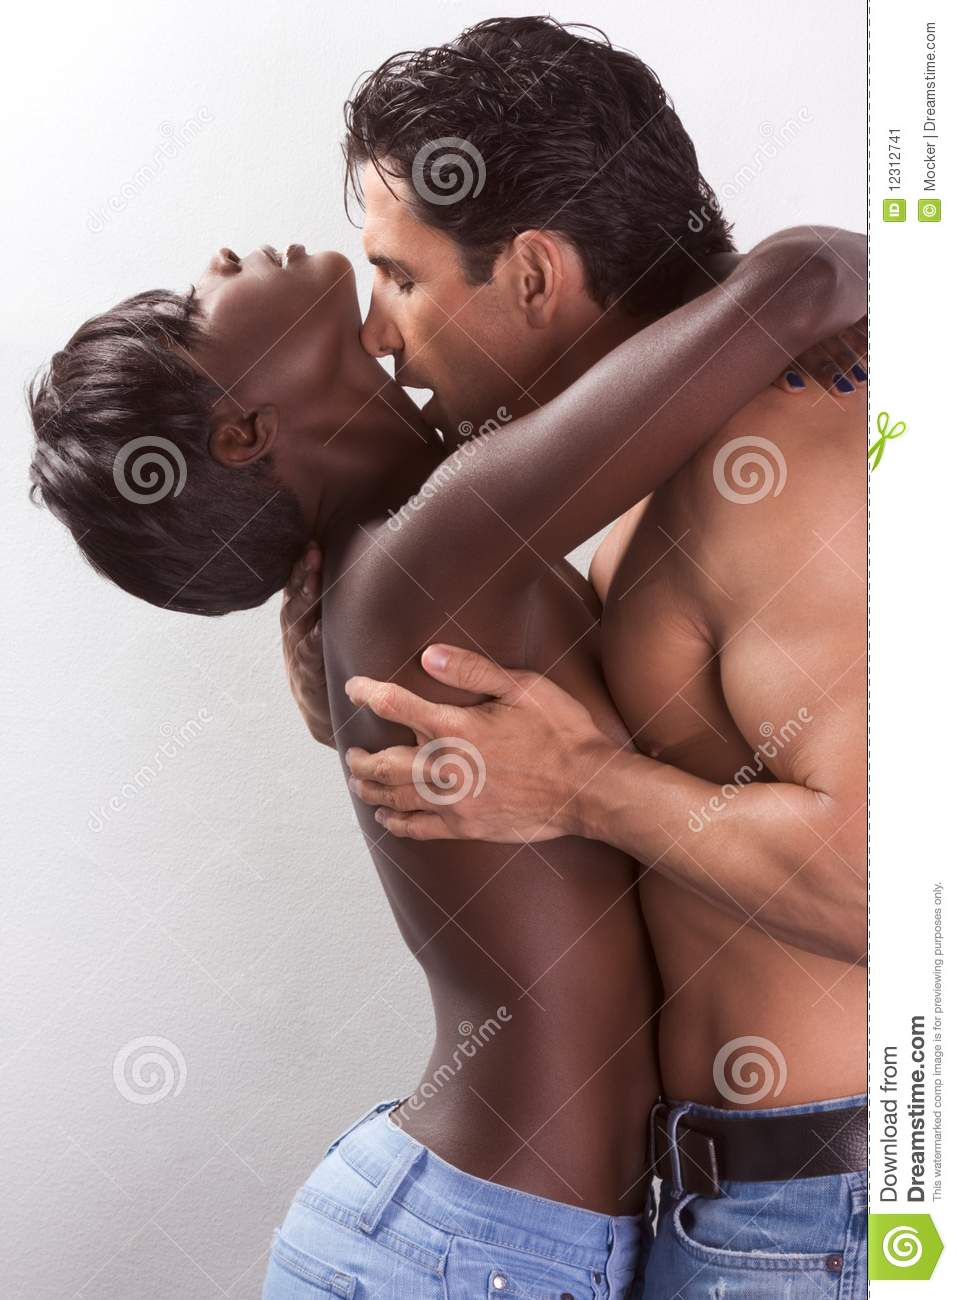 women-african-naked-couple-fuck-sex-with